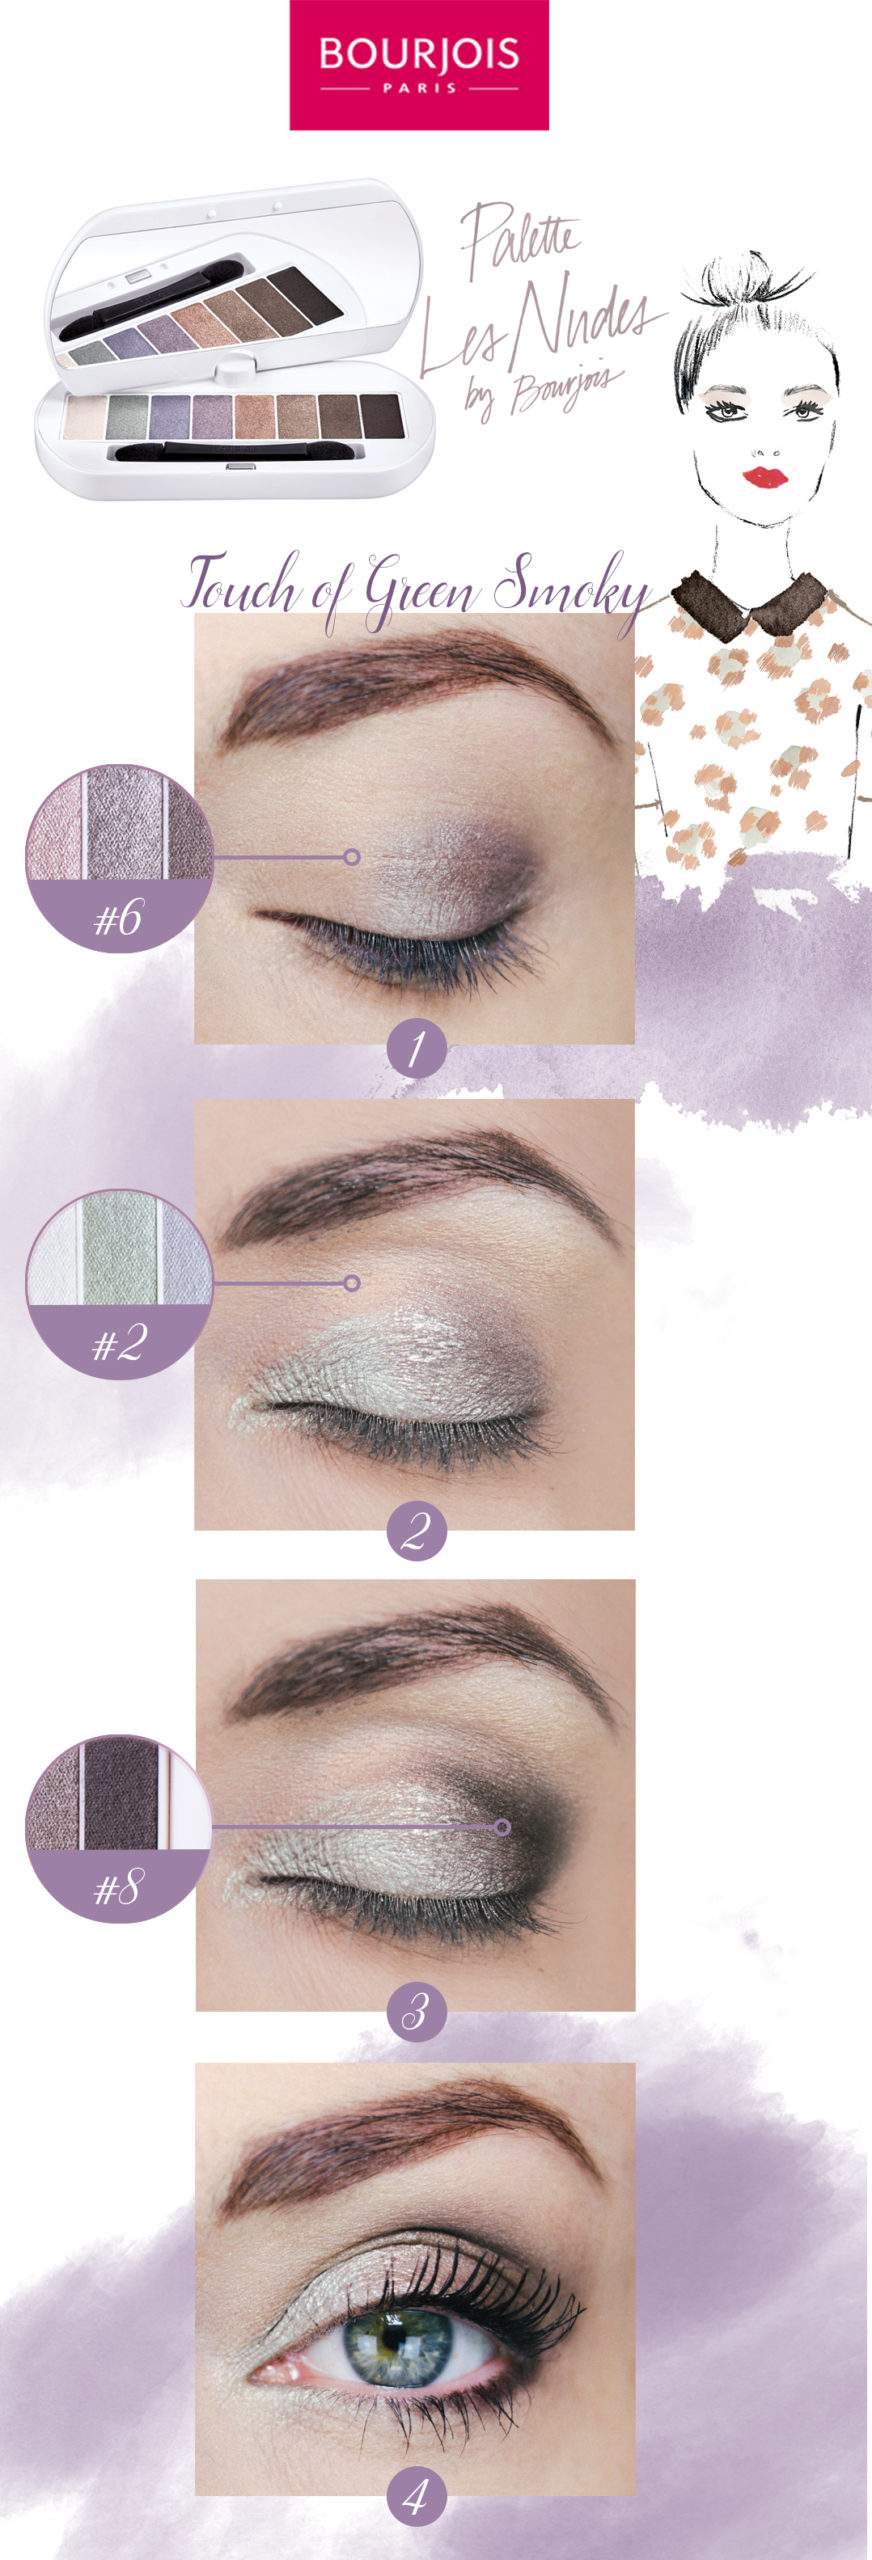 Makeup step by step Bourjois Paris